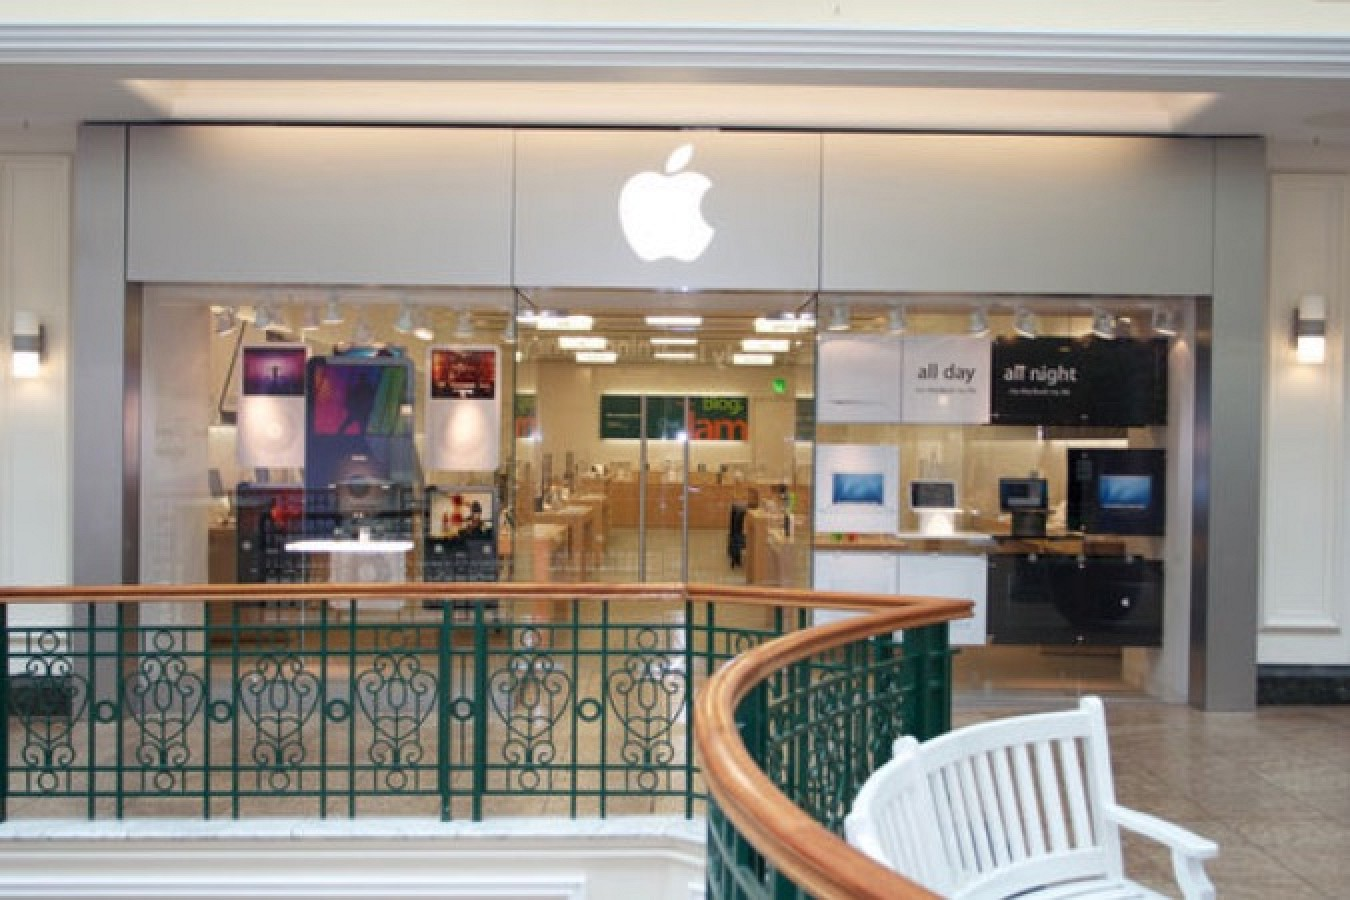 3fb6f6261 Apple Opening New Store at Meadowhall in Sheffield on iPhone 8 Launch Day -  MacRumors